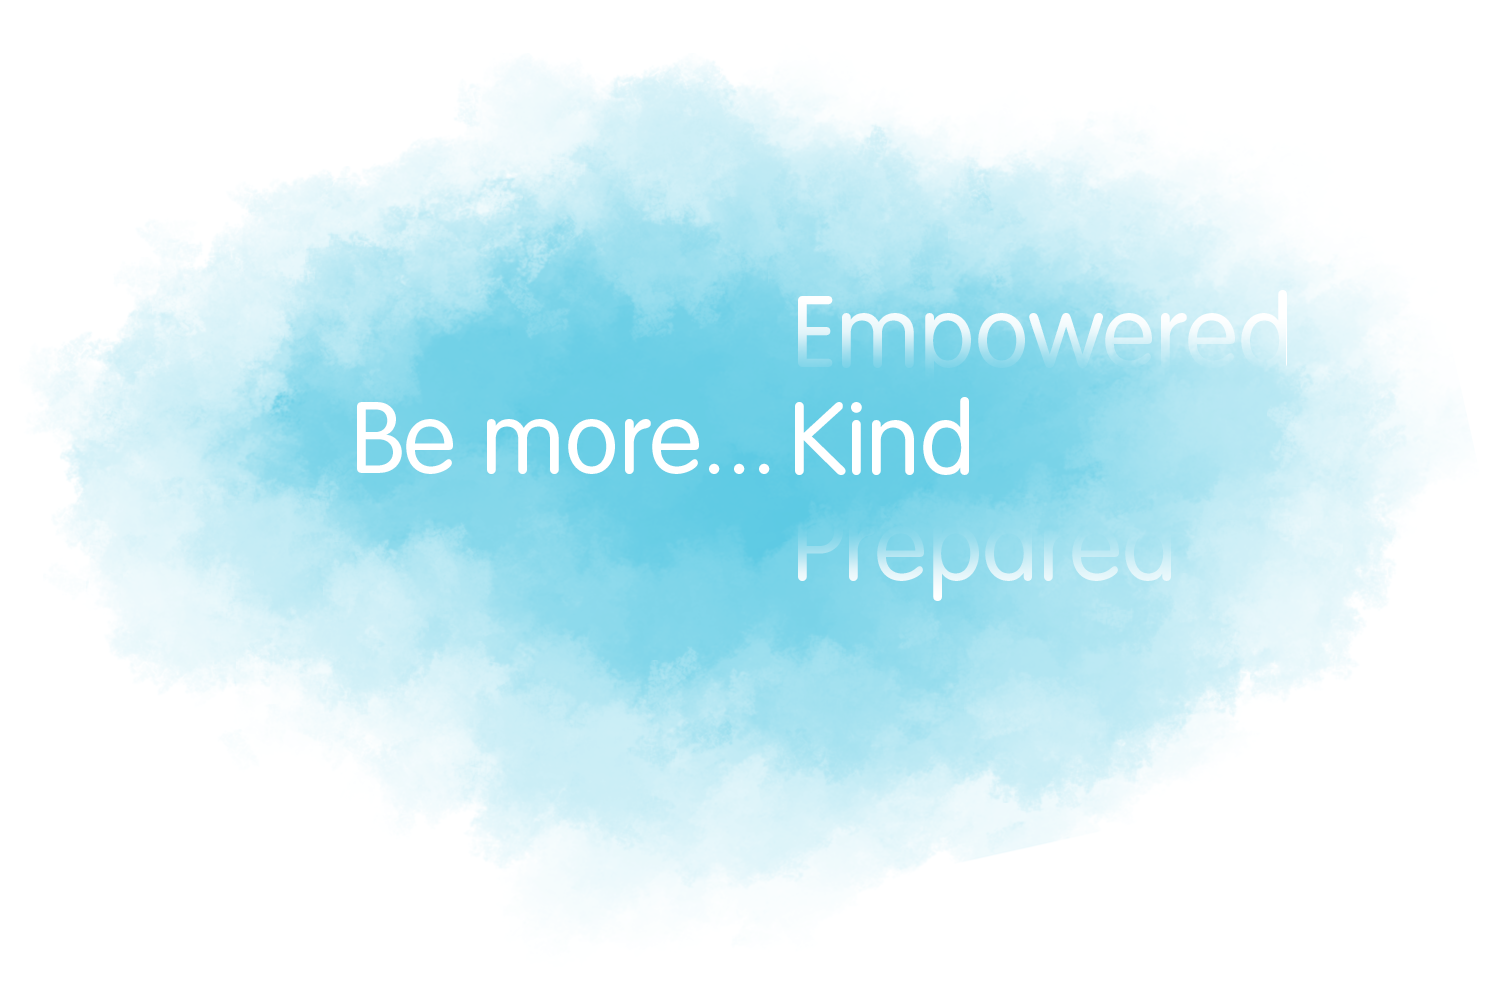 BLC Blog - Be more... kind